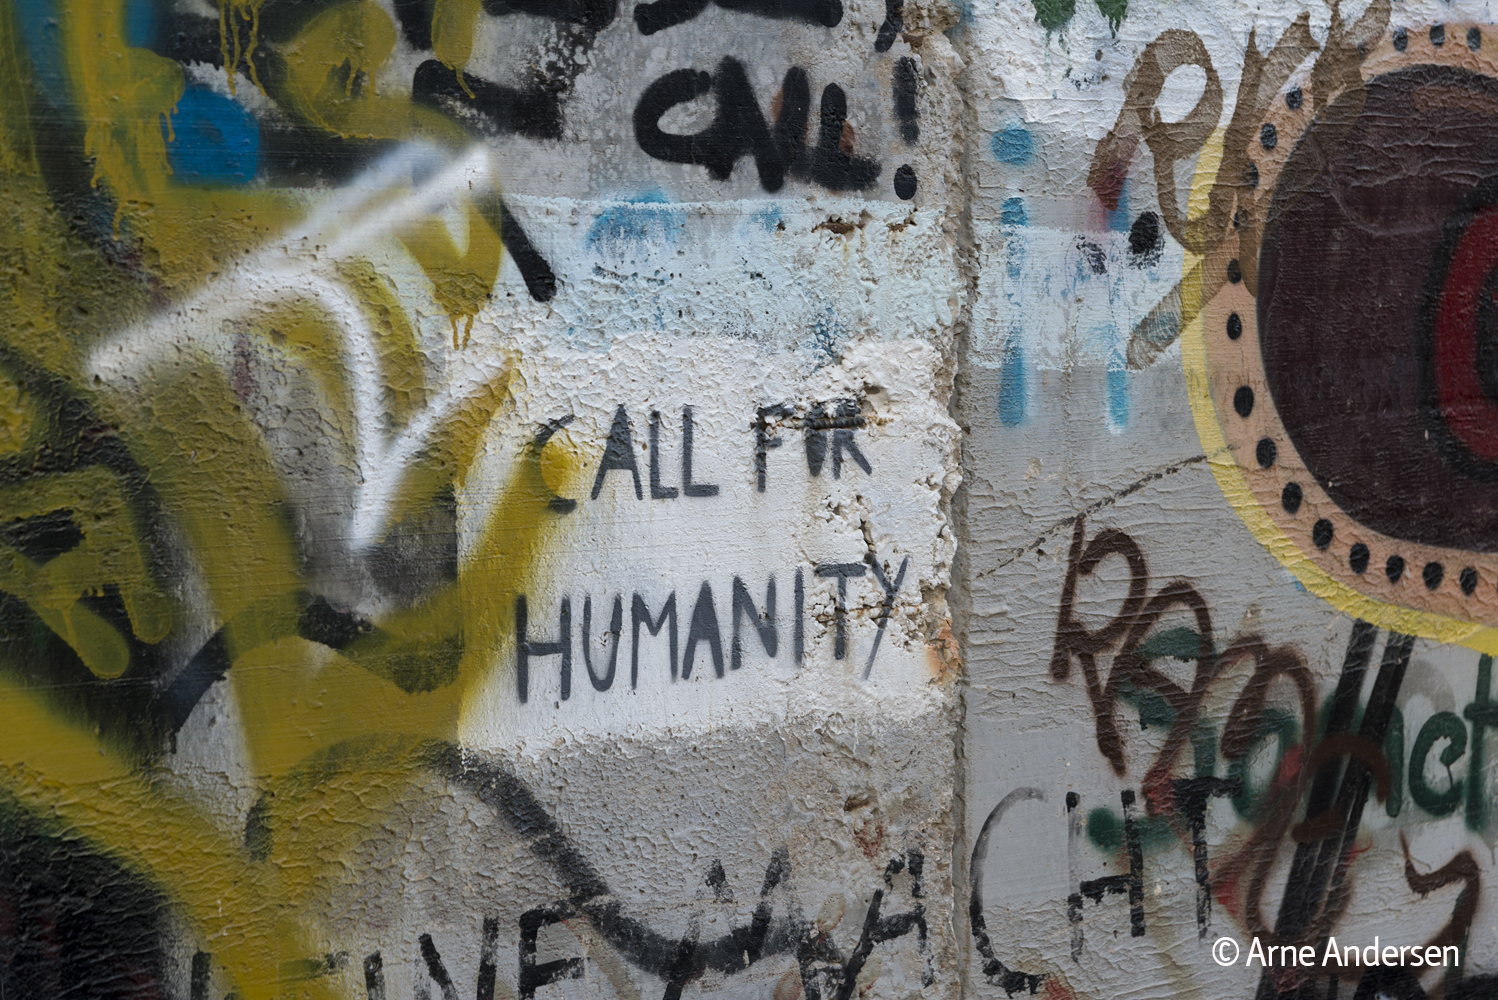 Call for Humanity